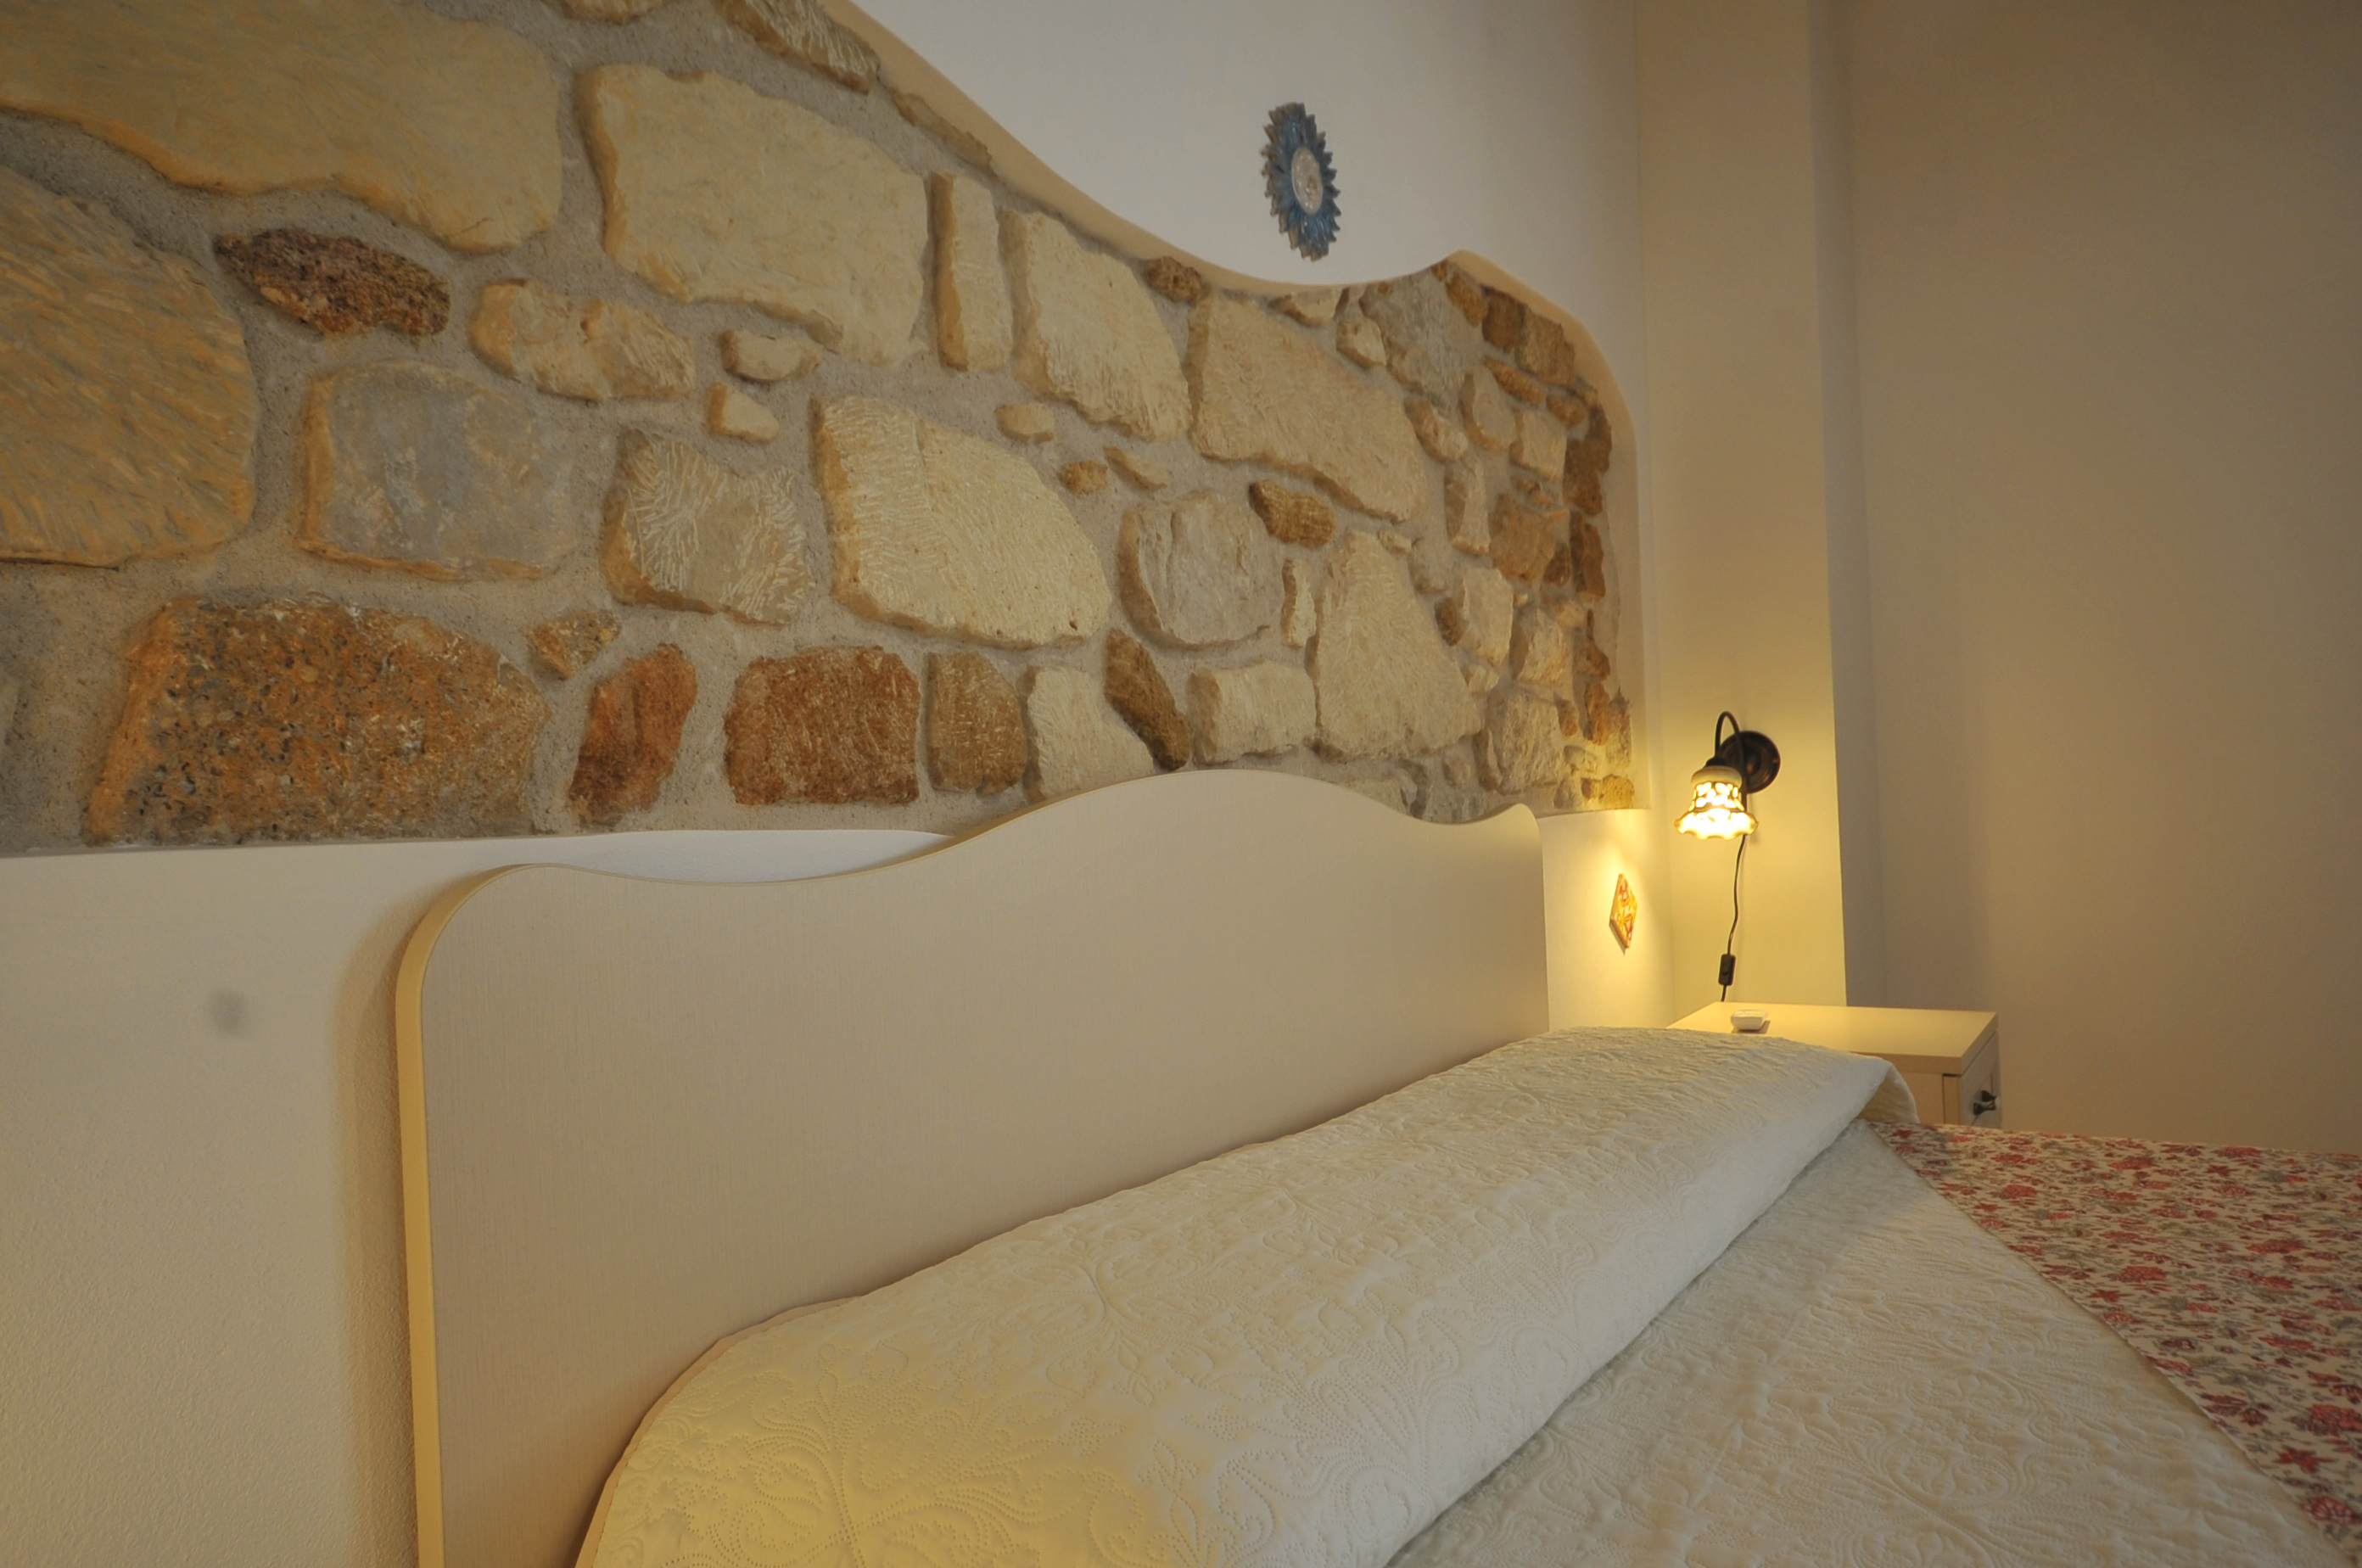 B&B Avola Morfeo - Bed & Breakfast ad Avola con piscina - camera familiare